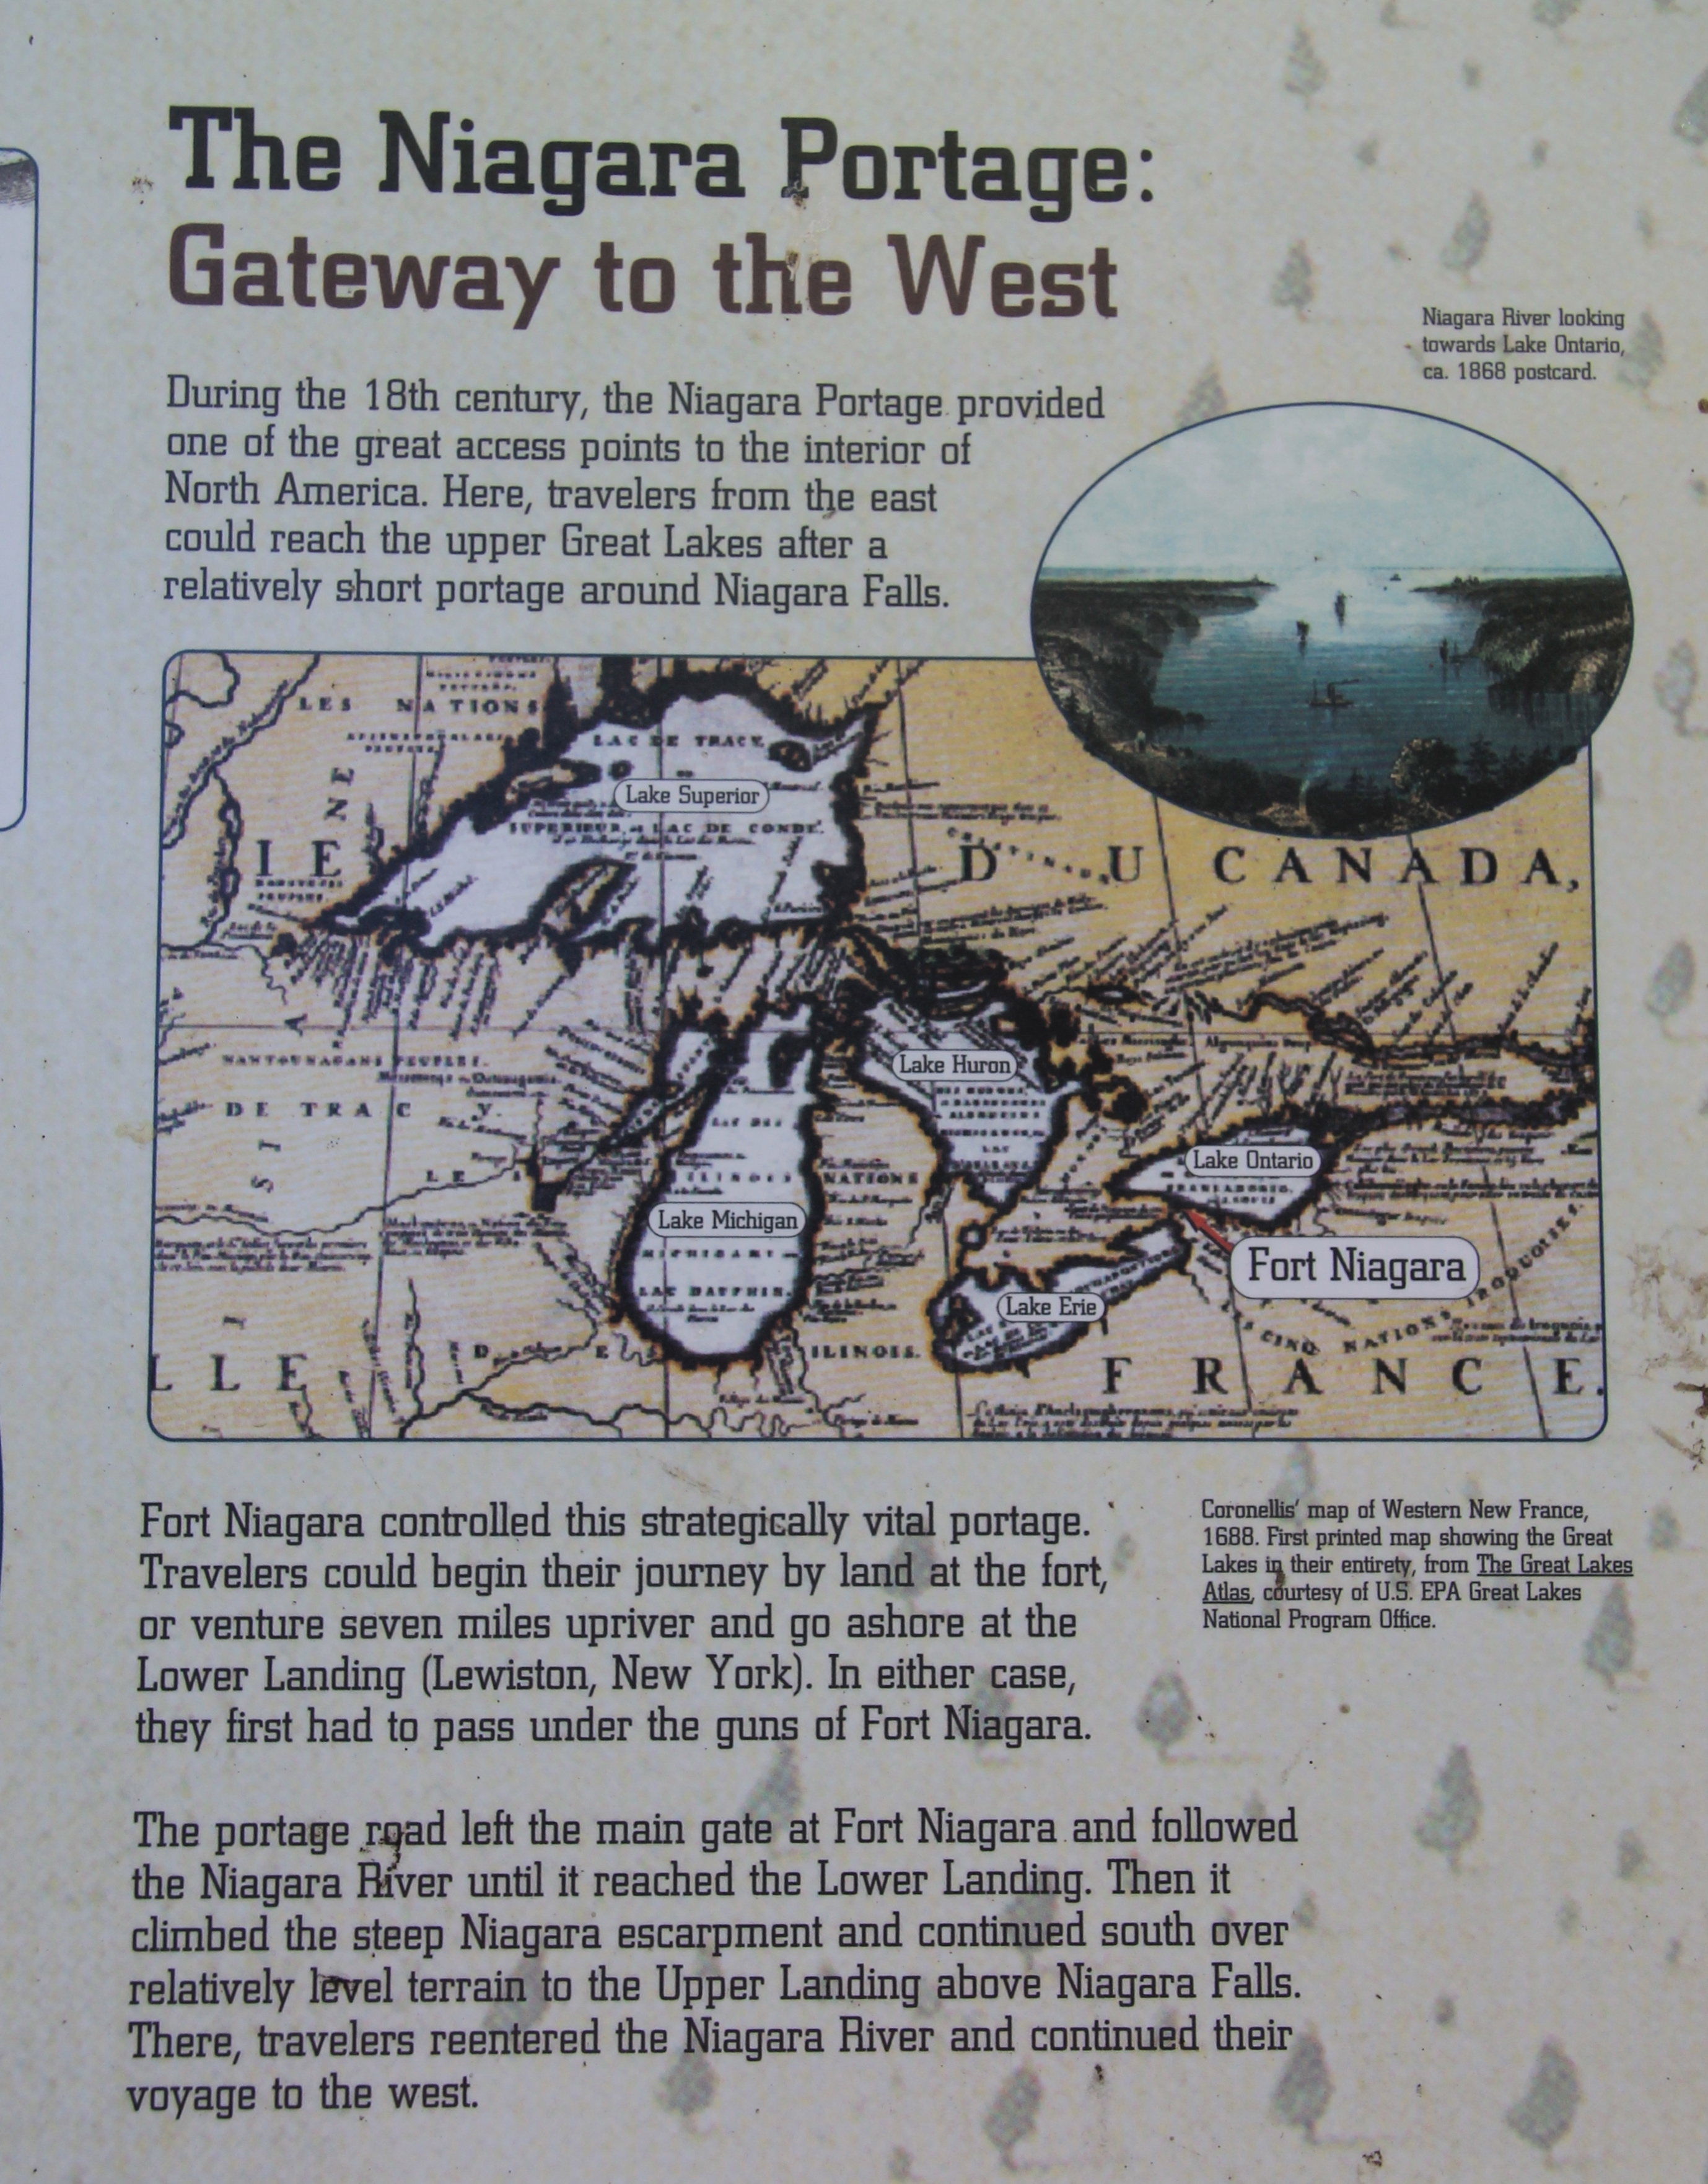 The Niagara Portage: Gateway to the West Marker